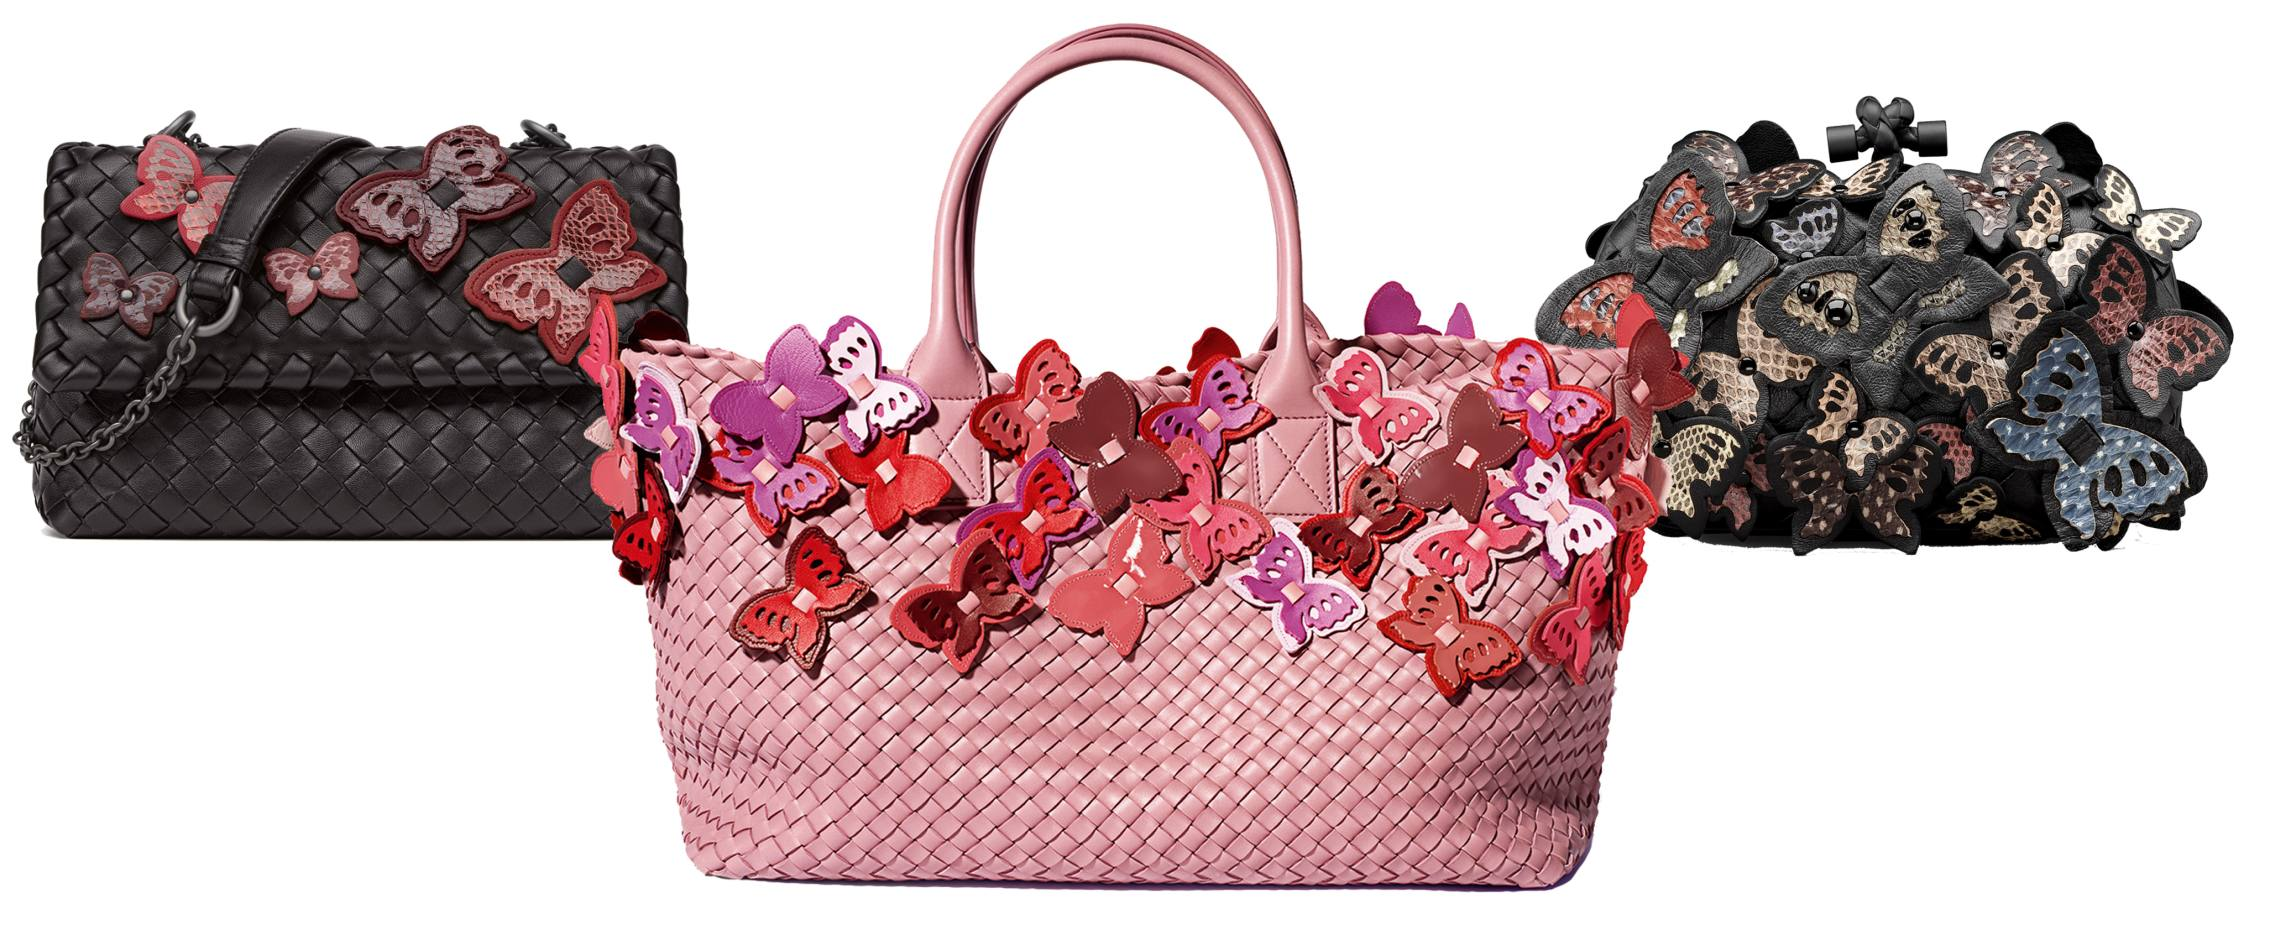 c86713179e97 Bottega Veneta s limited edition butterfly bags land at Harrods ...